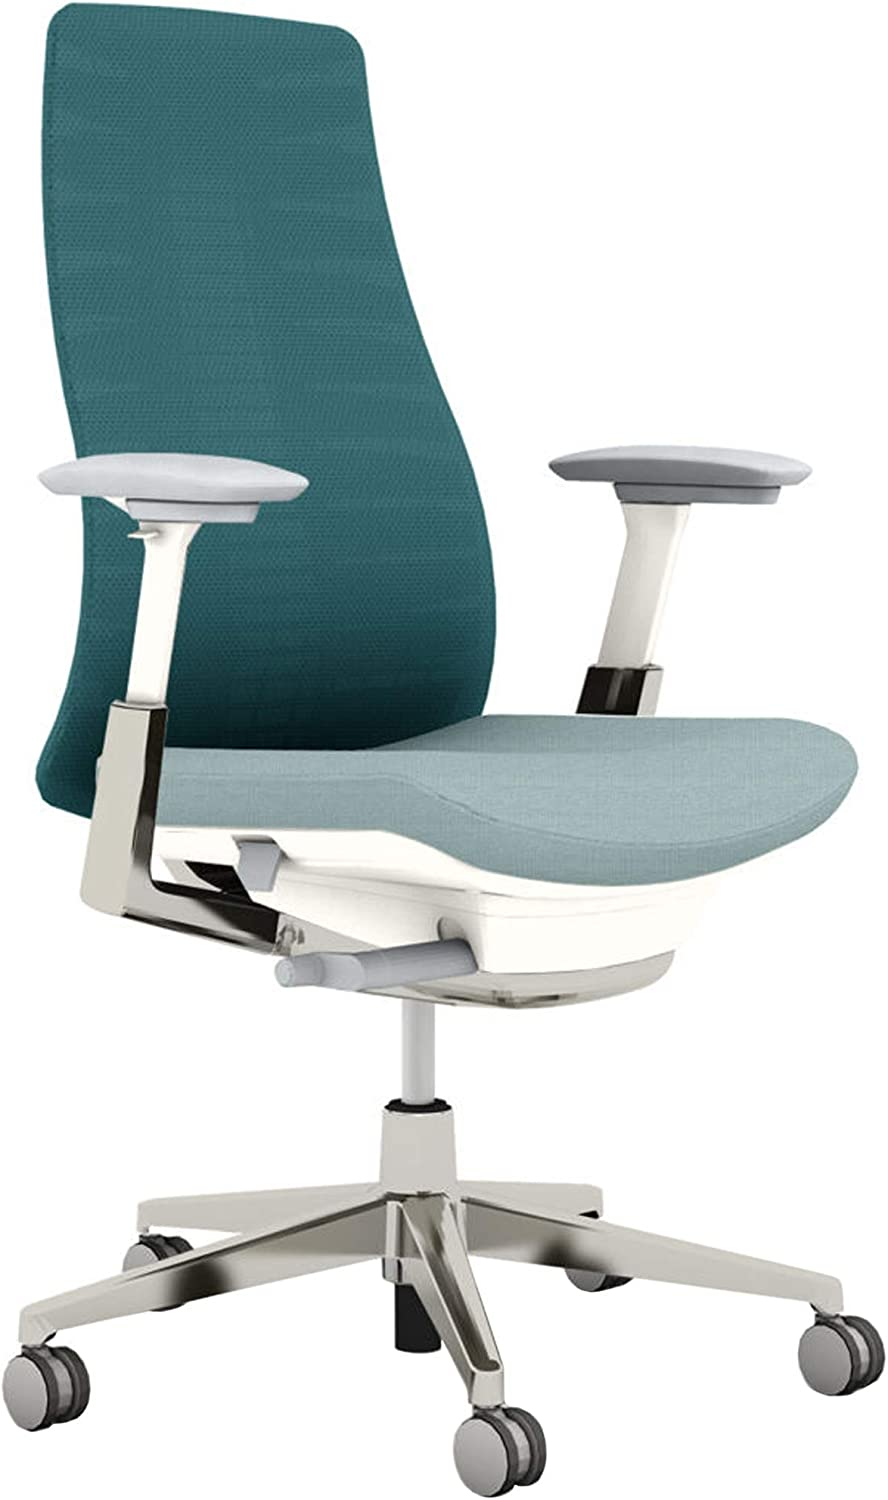 Haworth Fern High Performance Office Chair with Ergonomic Innovations and Flexible Mesh Back, Cornflower